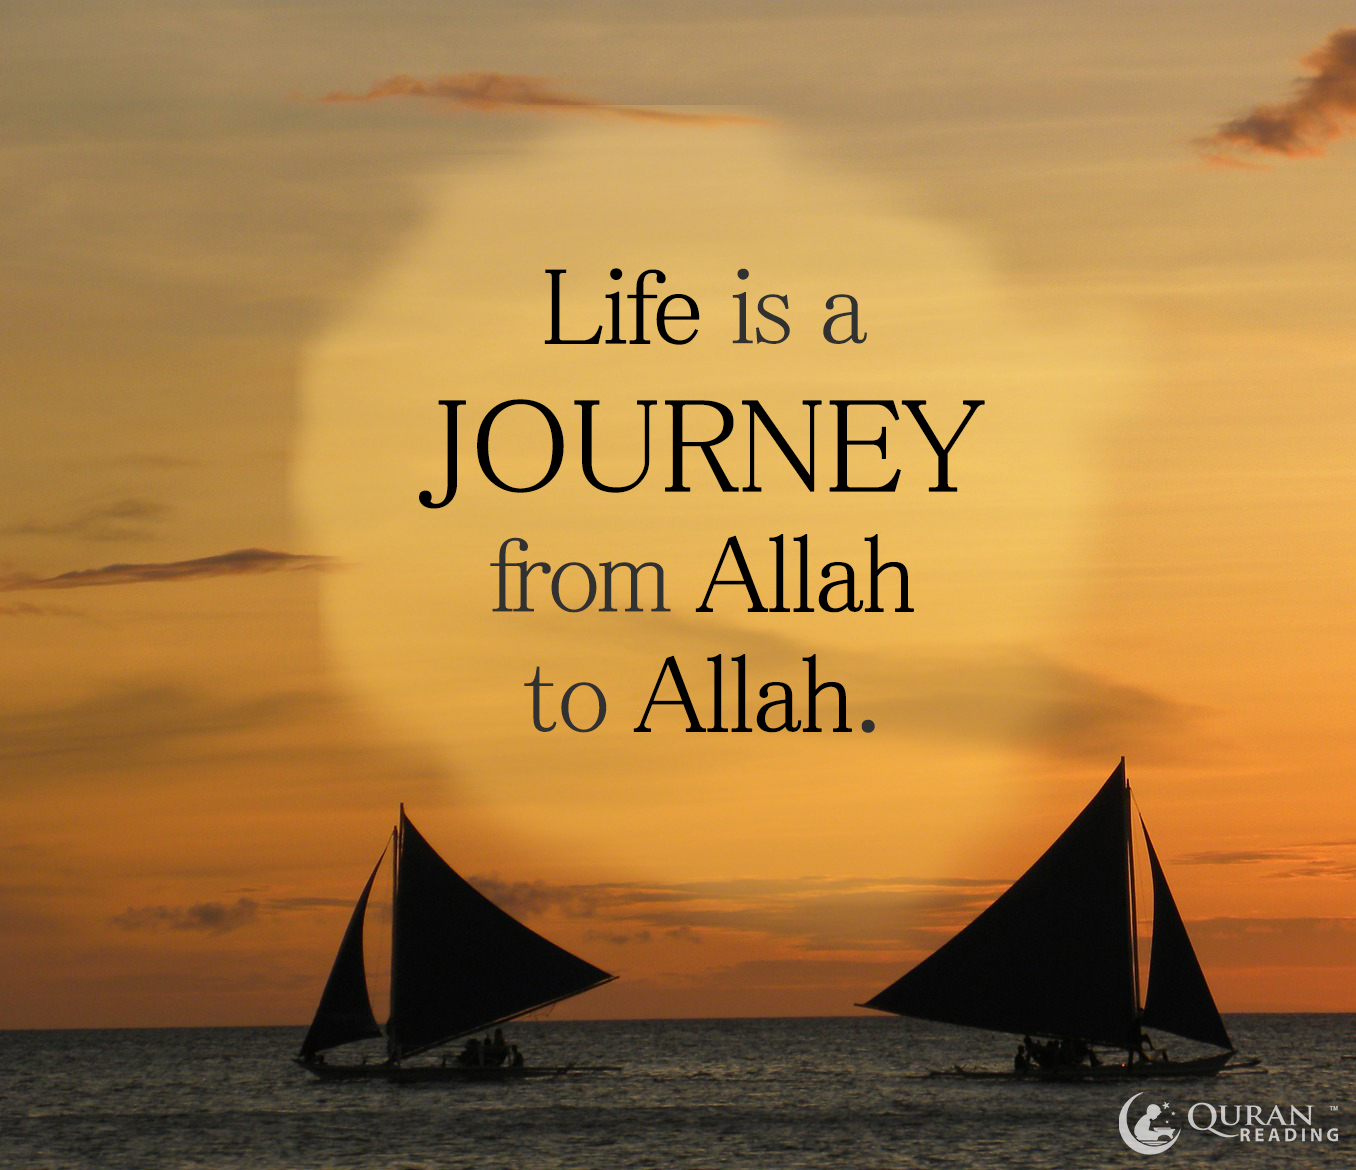 Inspirational Quotes About Life S Journey: Life Is A Journey From Allah To Allah.